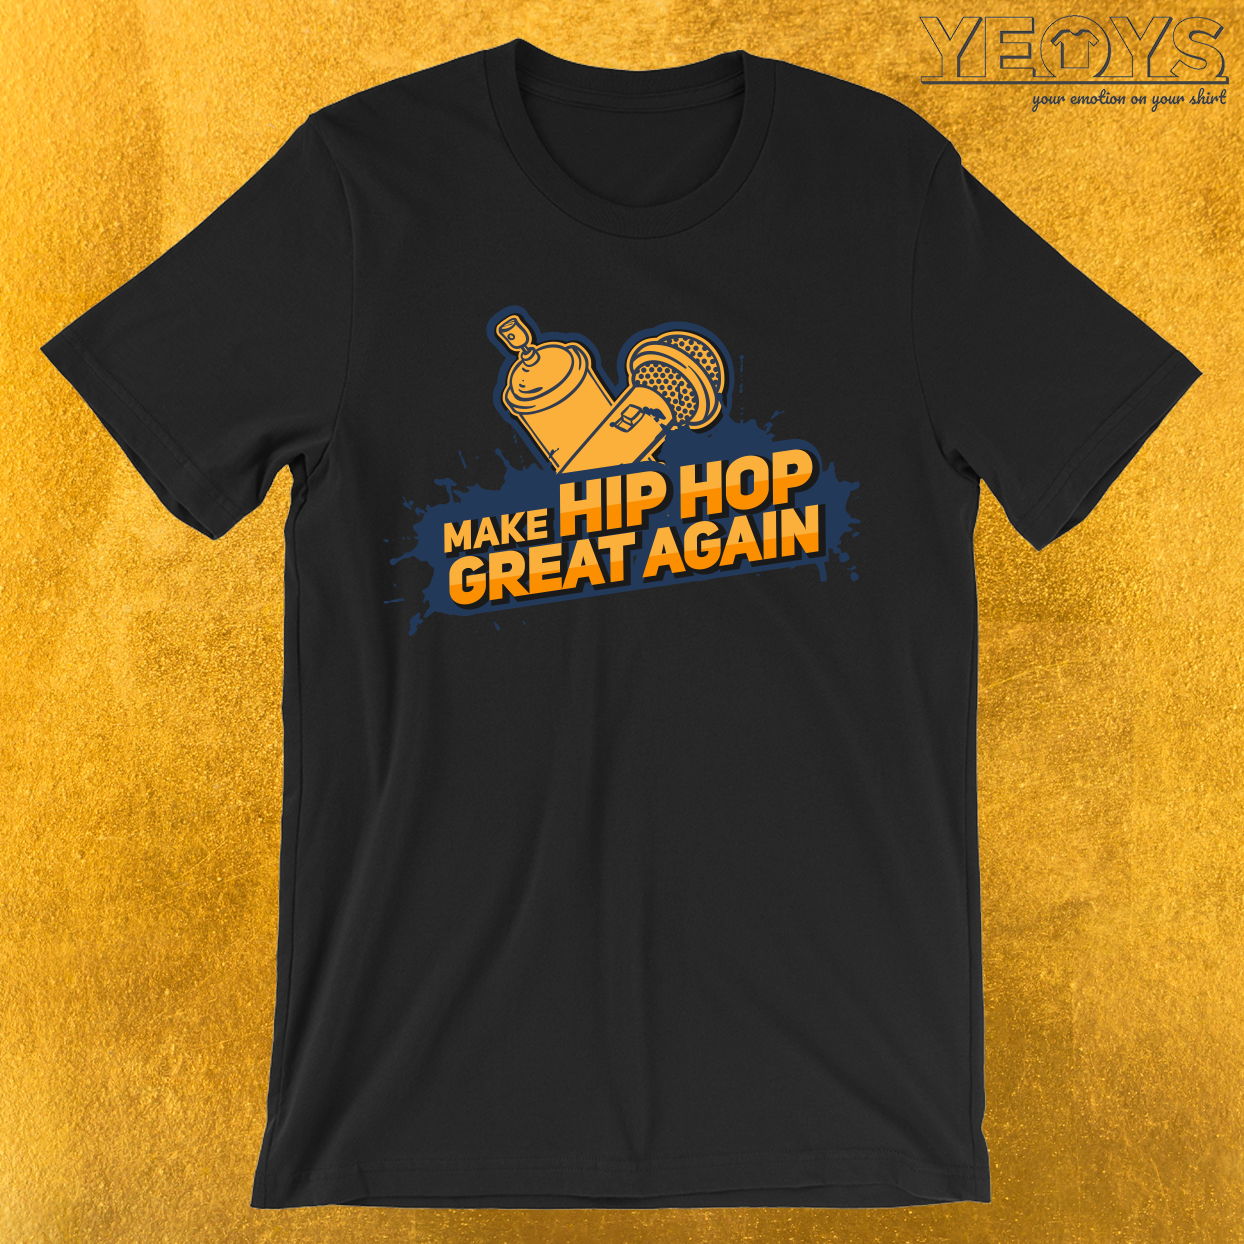 Make Hip Hop Great Again T-Shirt